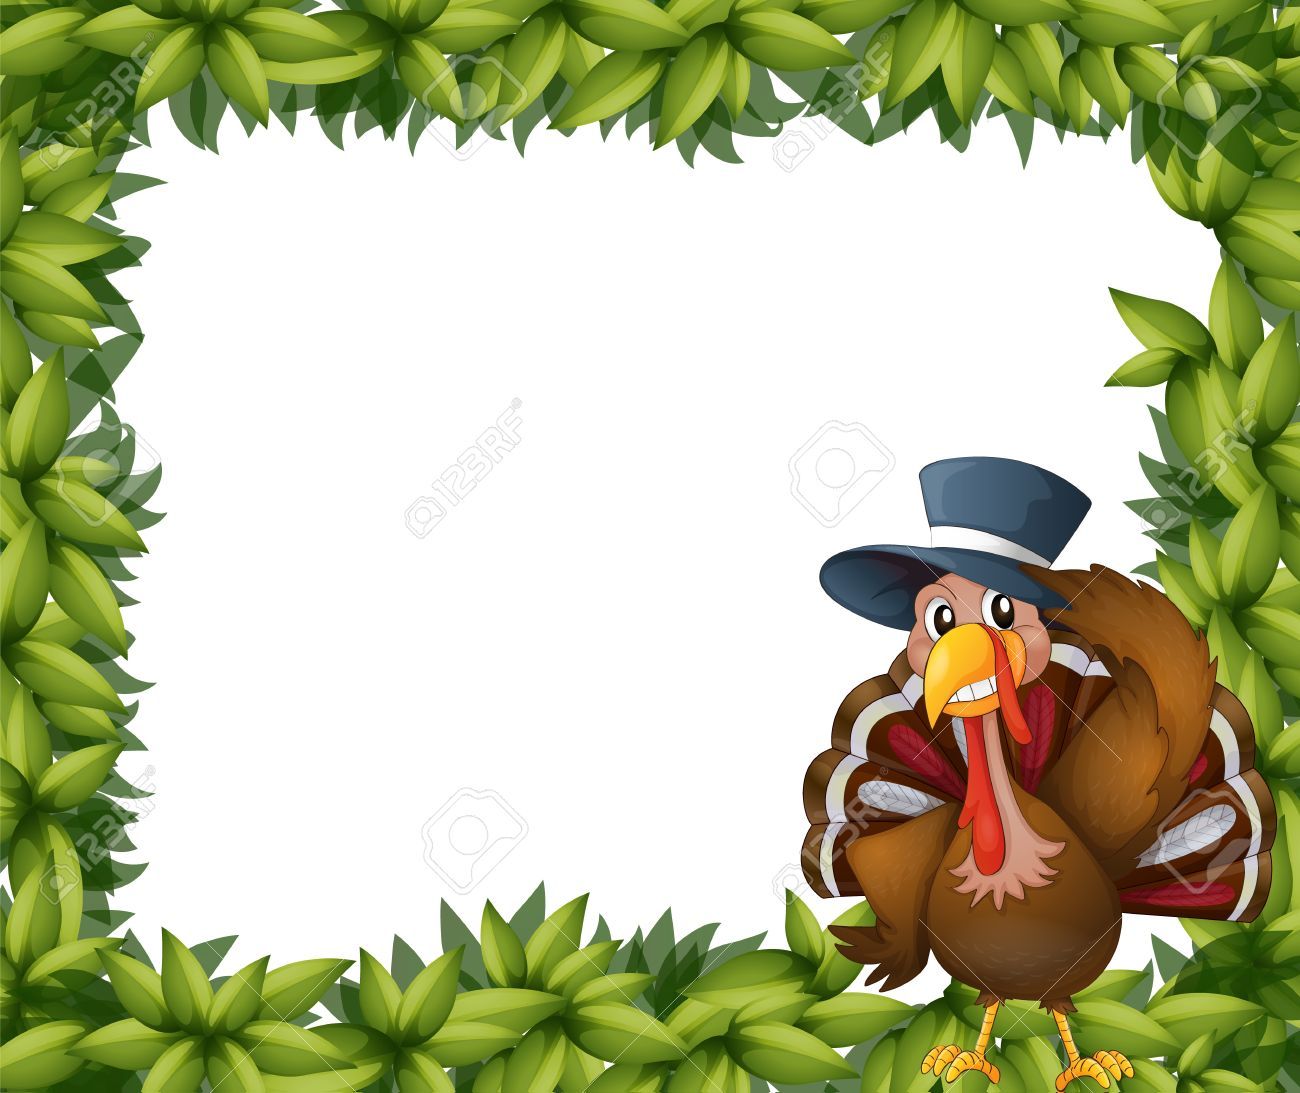 Illustration of a turkey and the leafy frame on a white background Stock Vector - 17890241